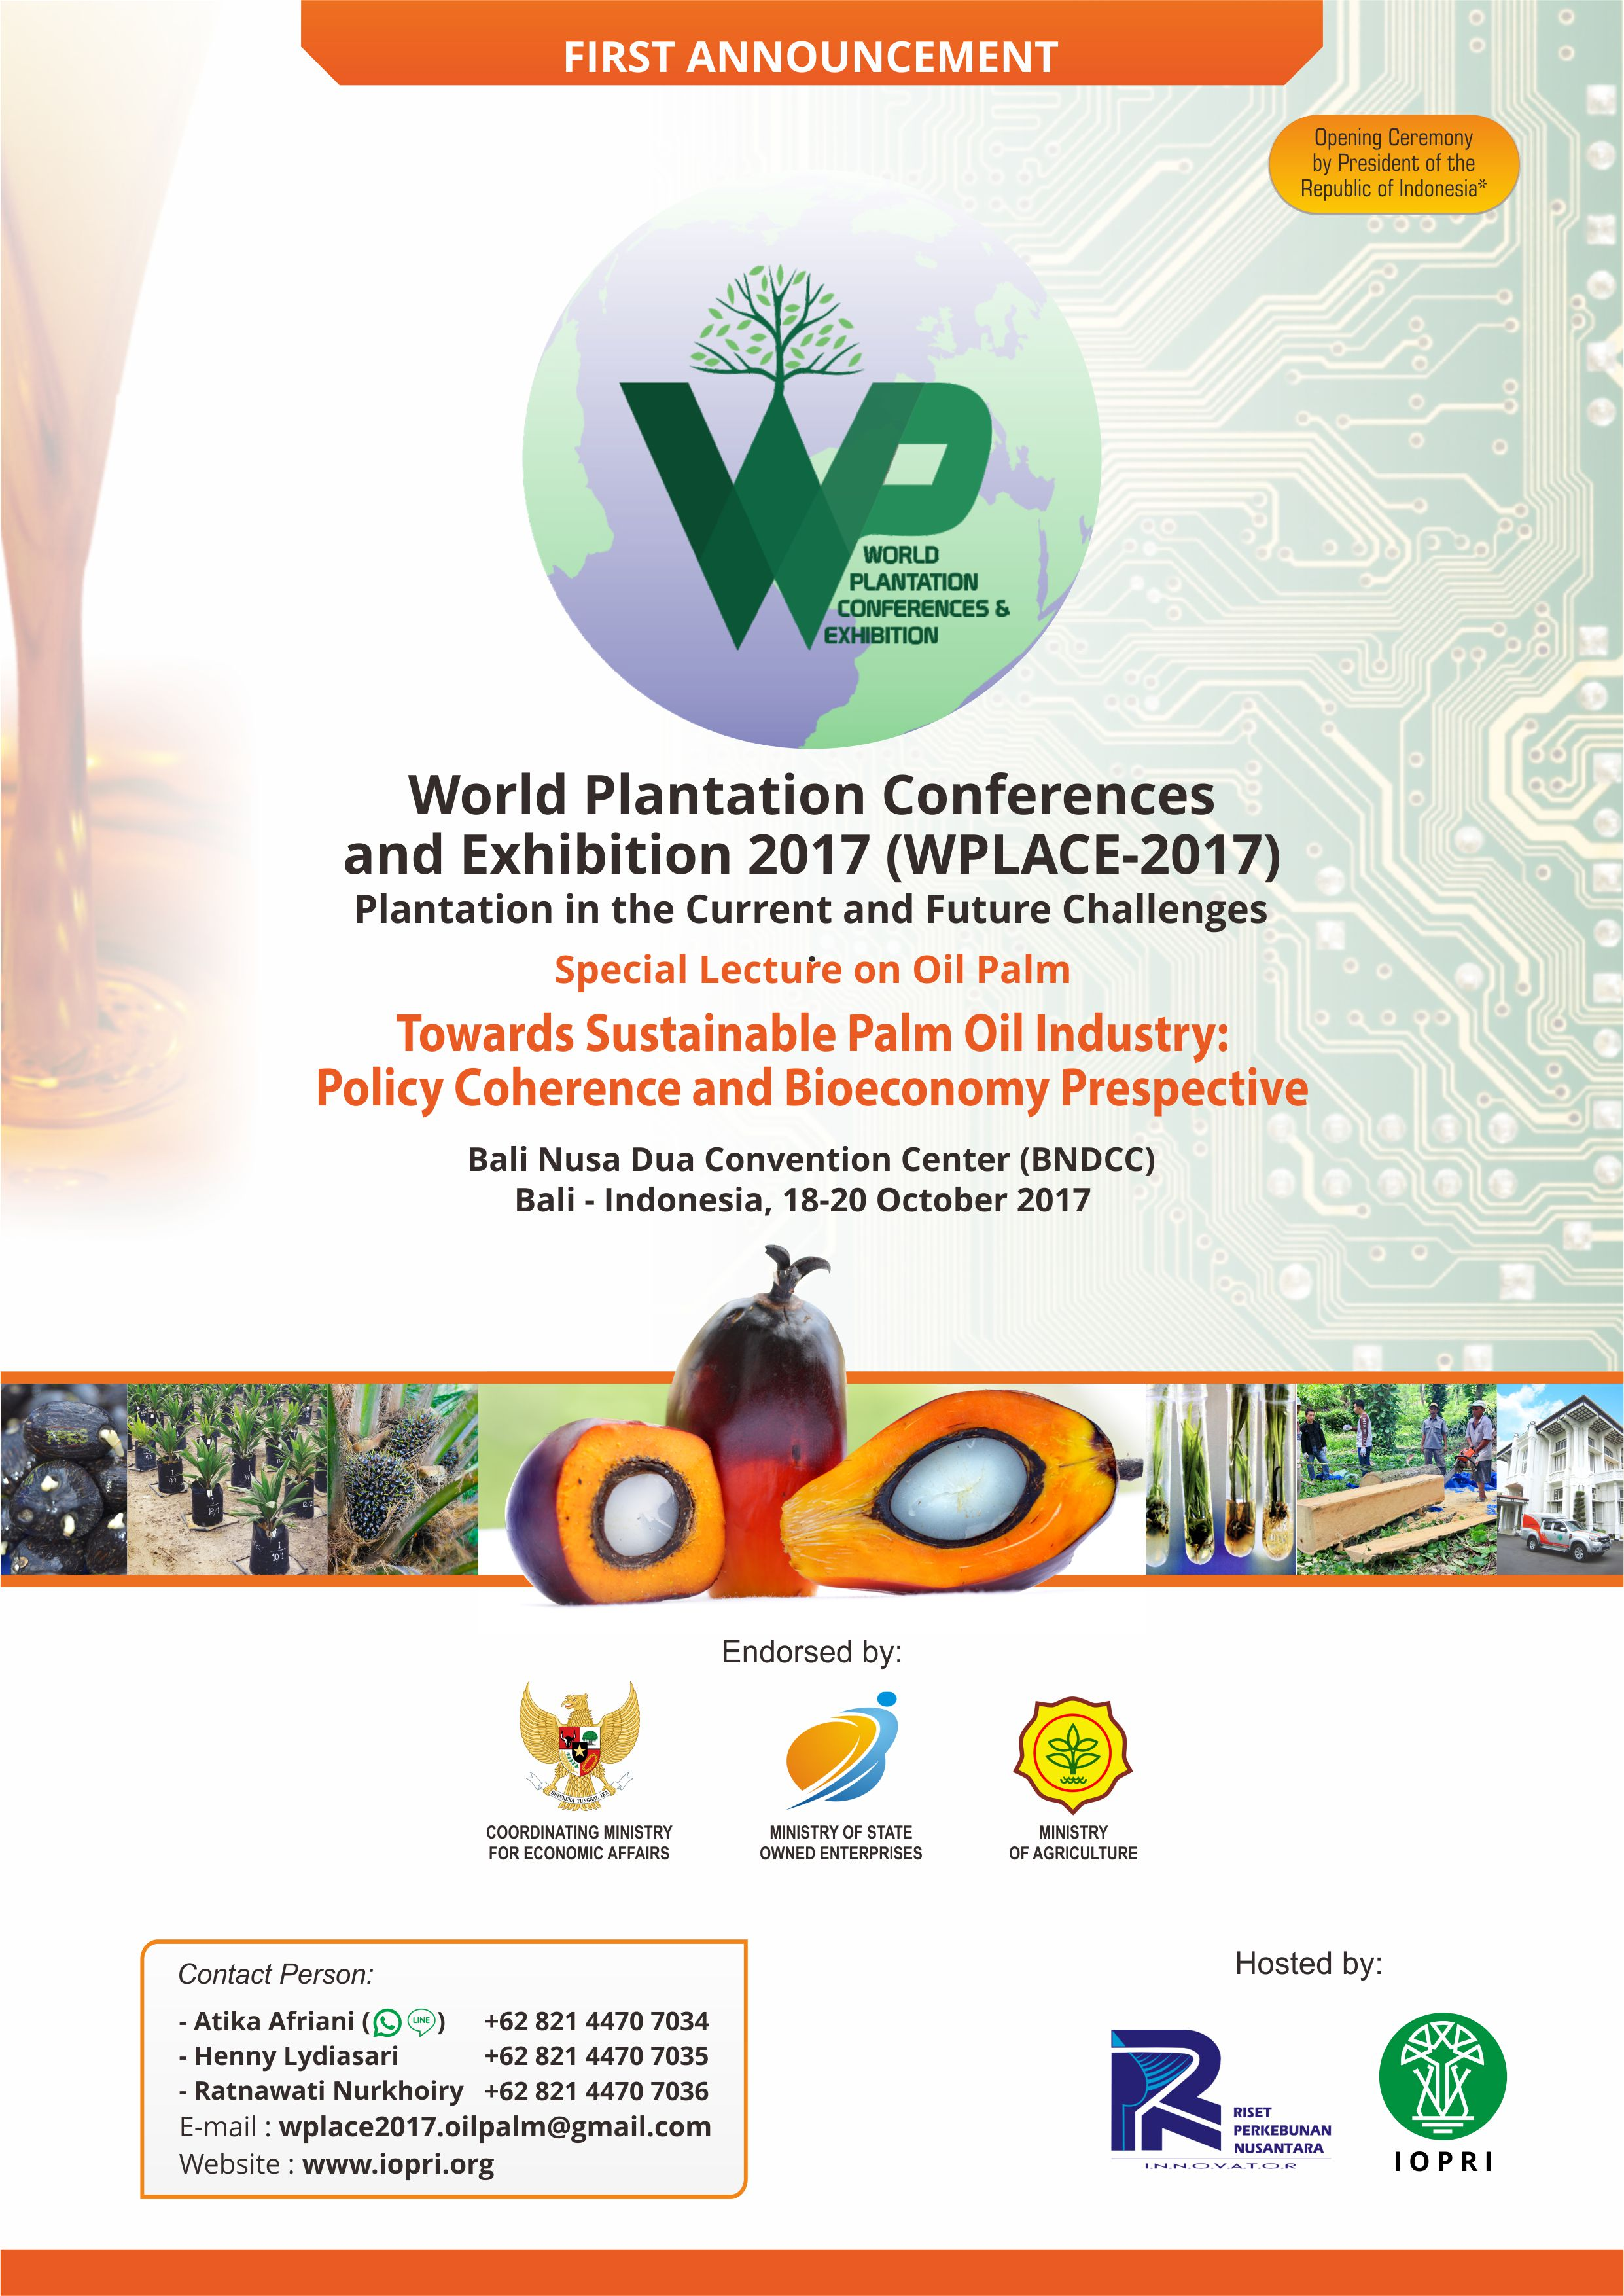 WPLACE 2017